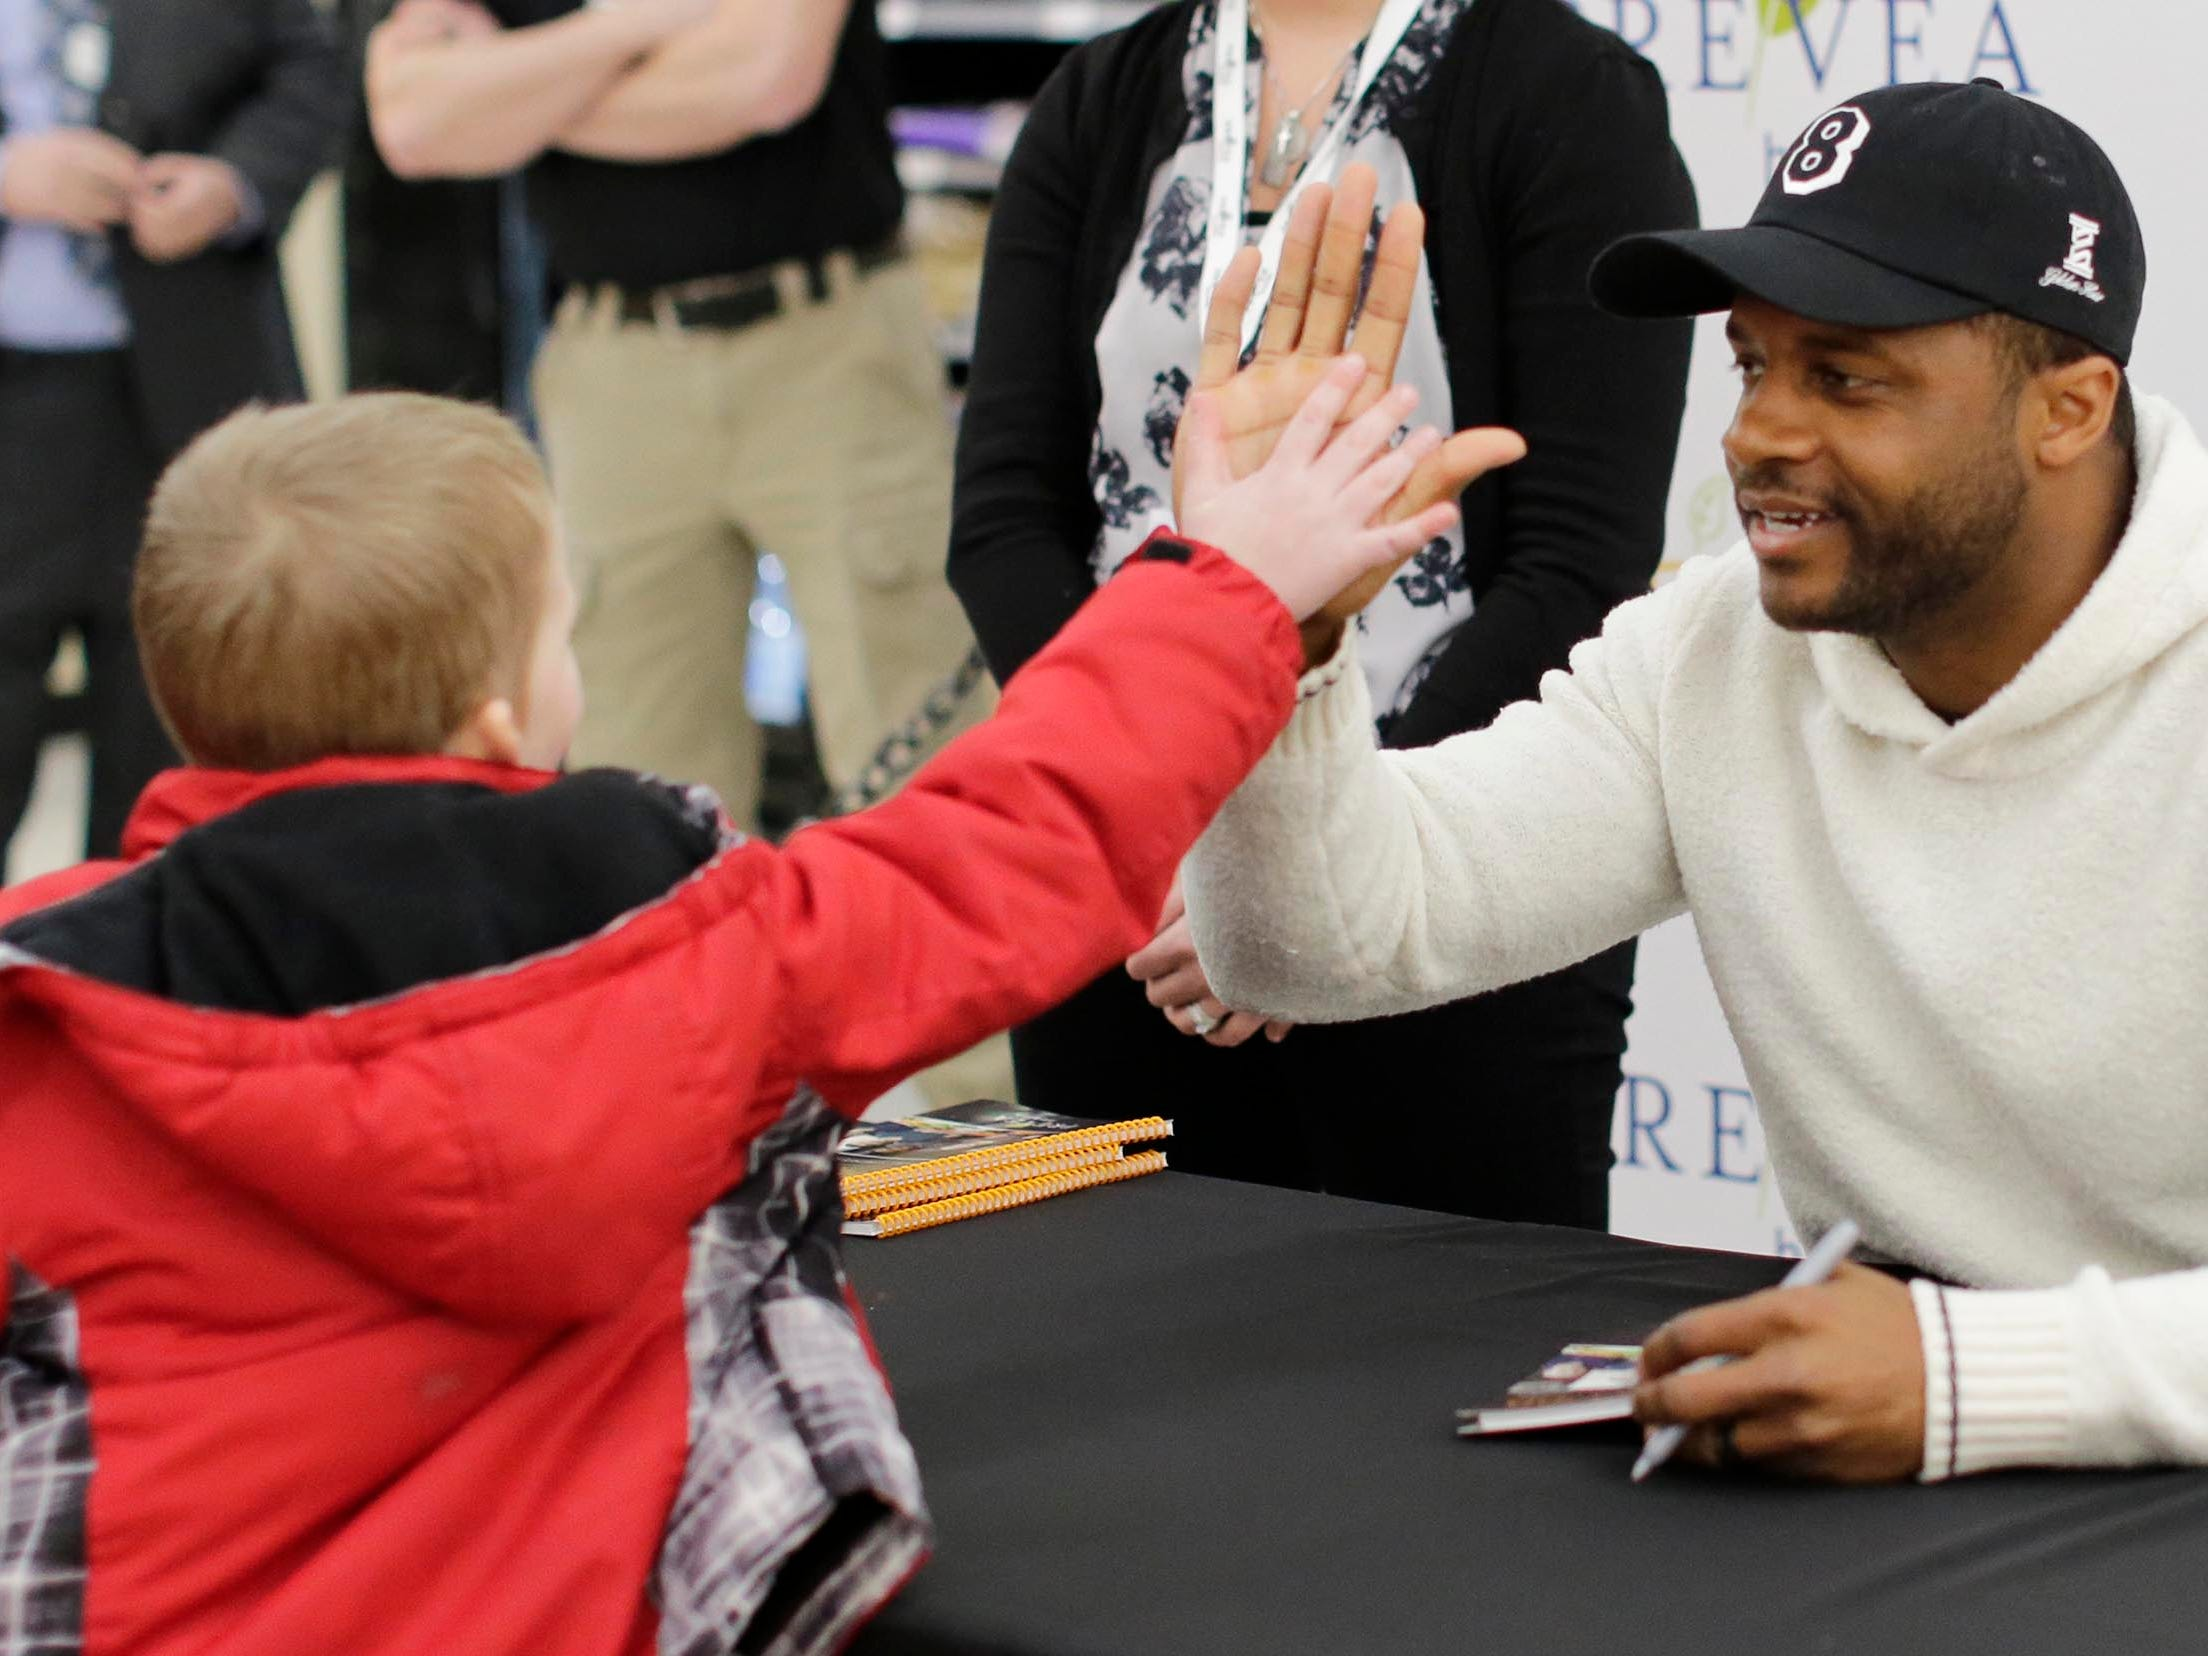 """Josiah Arentsen, 5, of Cedar Grove, gets a high five from Green Bay Packer Randall Cobb, Thursday, February 28, 2019, in Sheboygan, Wis. Cobb was at Festival Foods in Sheboygan to sign copies of """"Prevea Gets Cooking with Cobb: Randall's Favorite Kid-Friendly Recipes""""."""